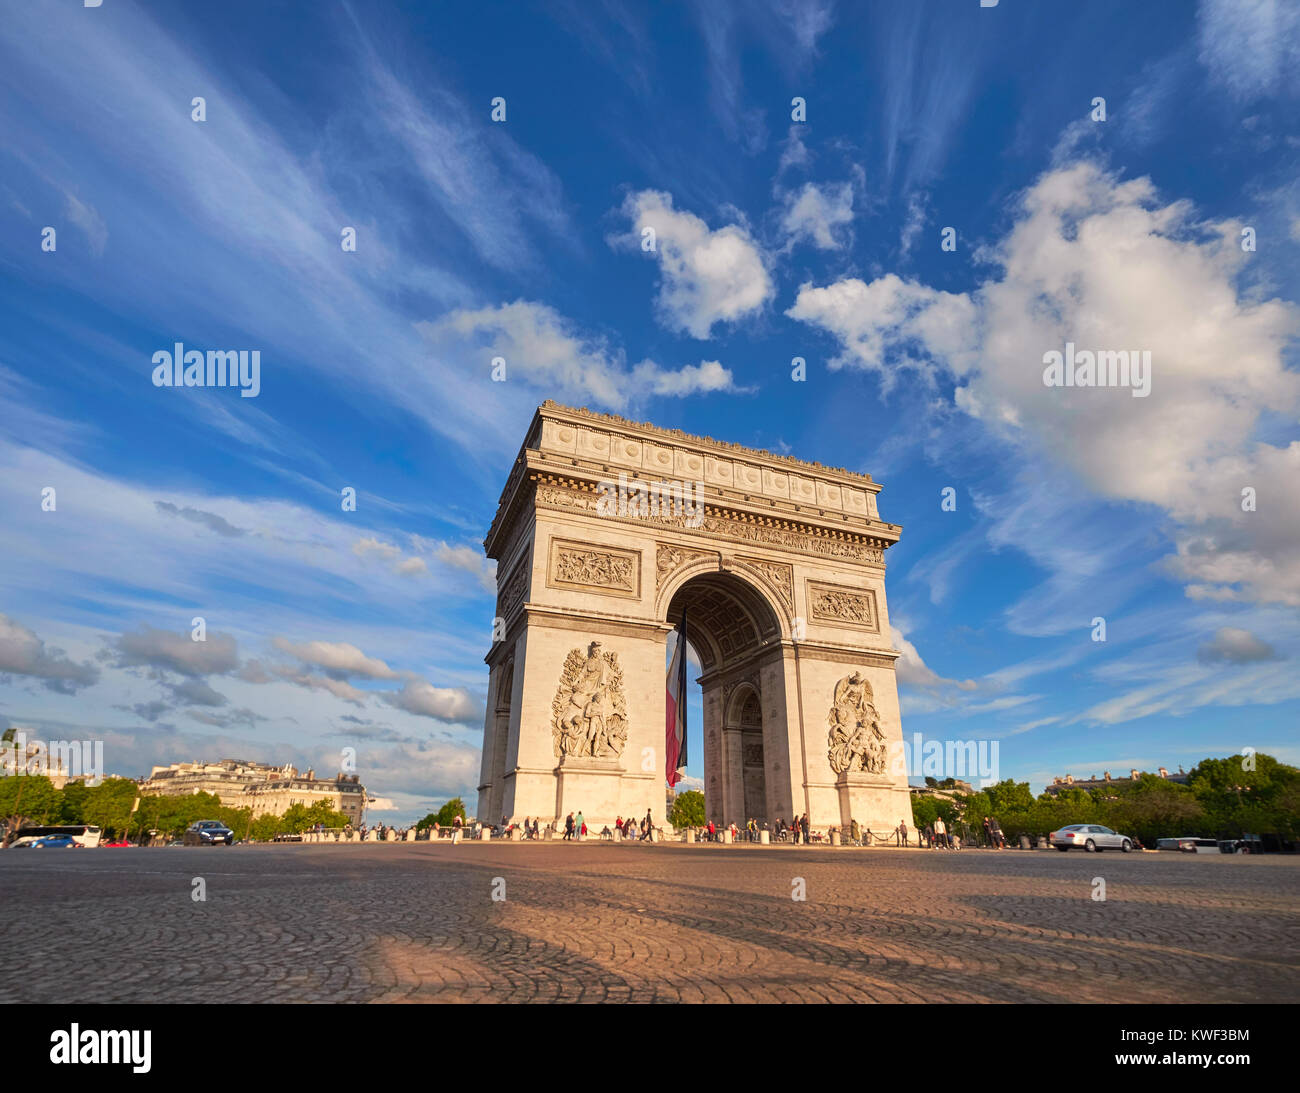 Arc de Triumph in Paris, France, on a bright afternoon with feather clouds behing, panoramic image. - Stock Image